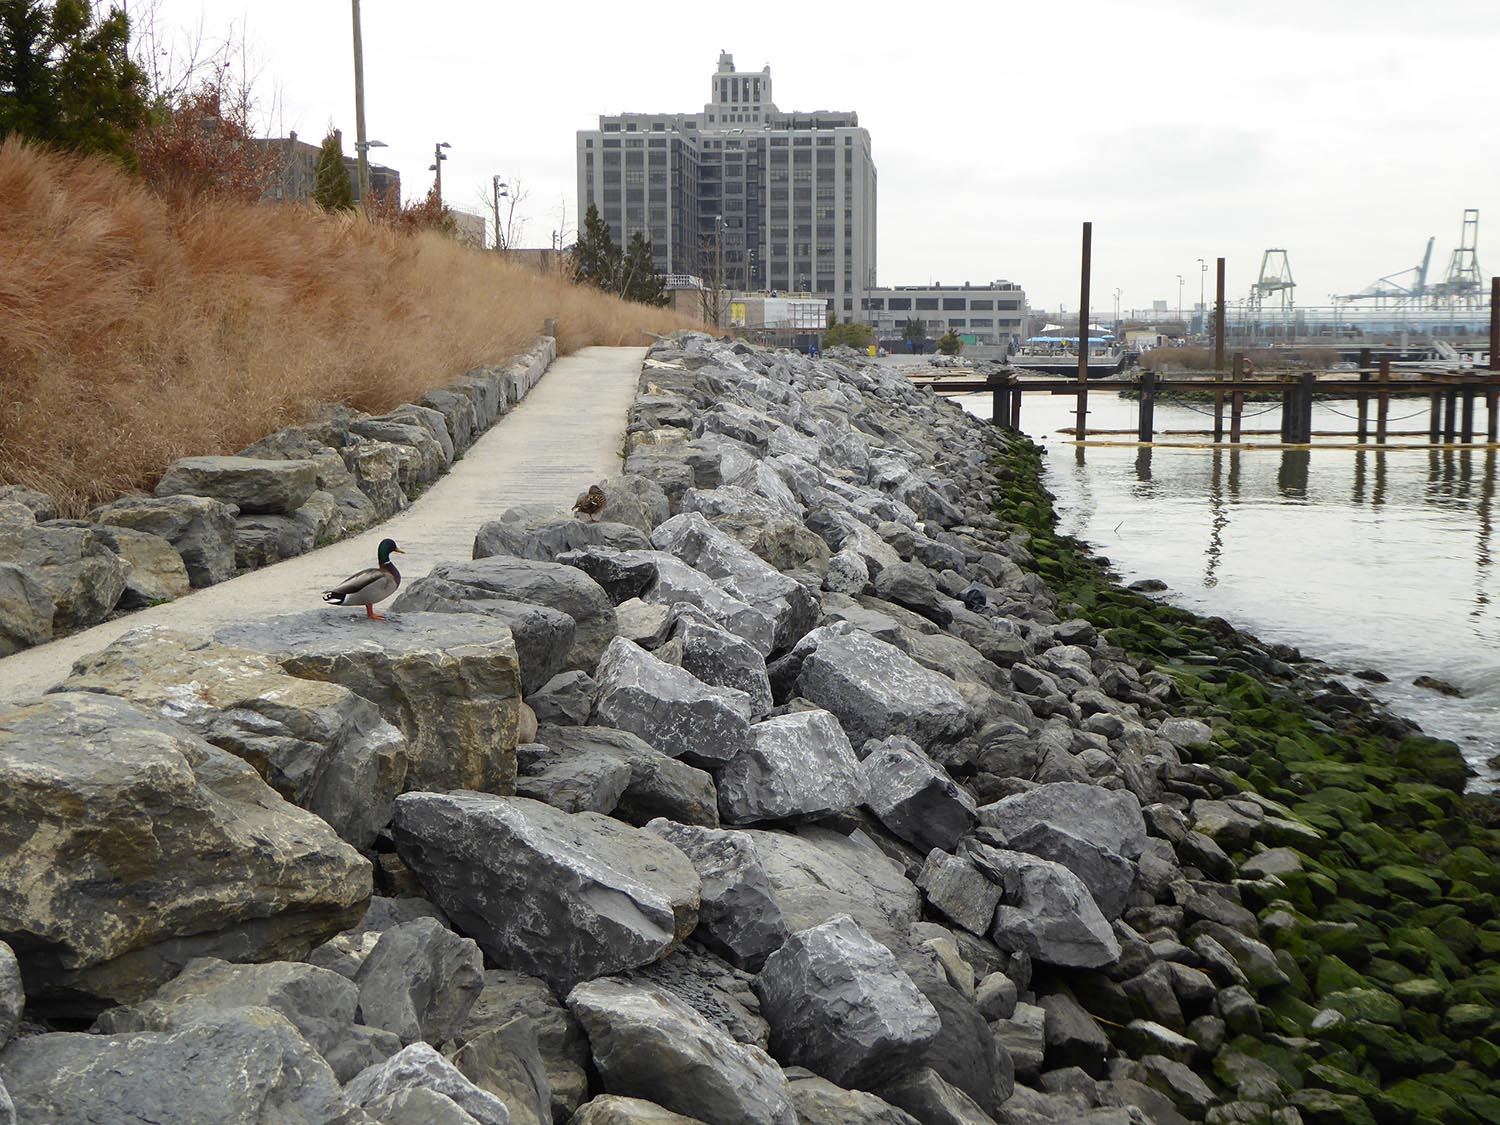 Intertidal marine habitat adjoining Pier 3